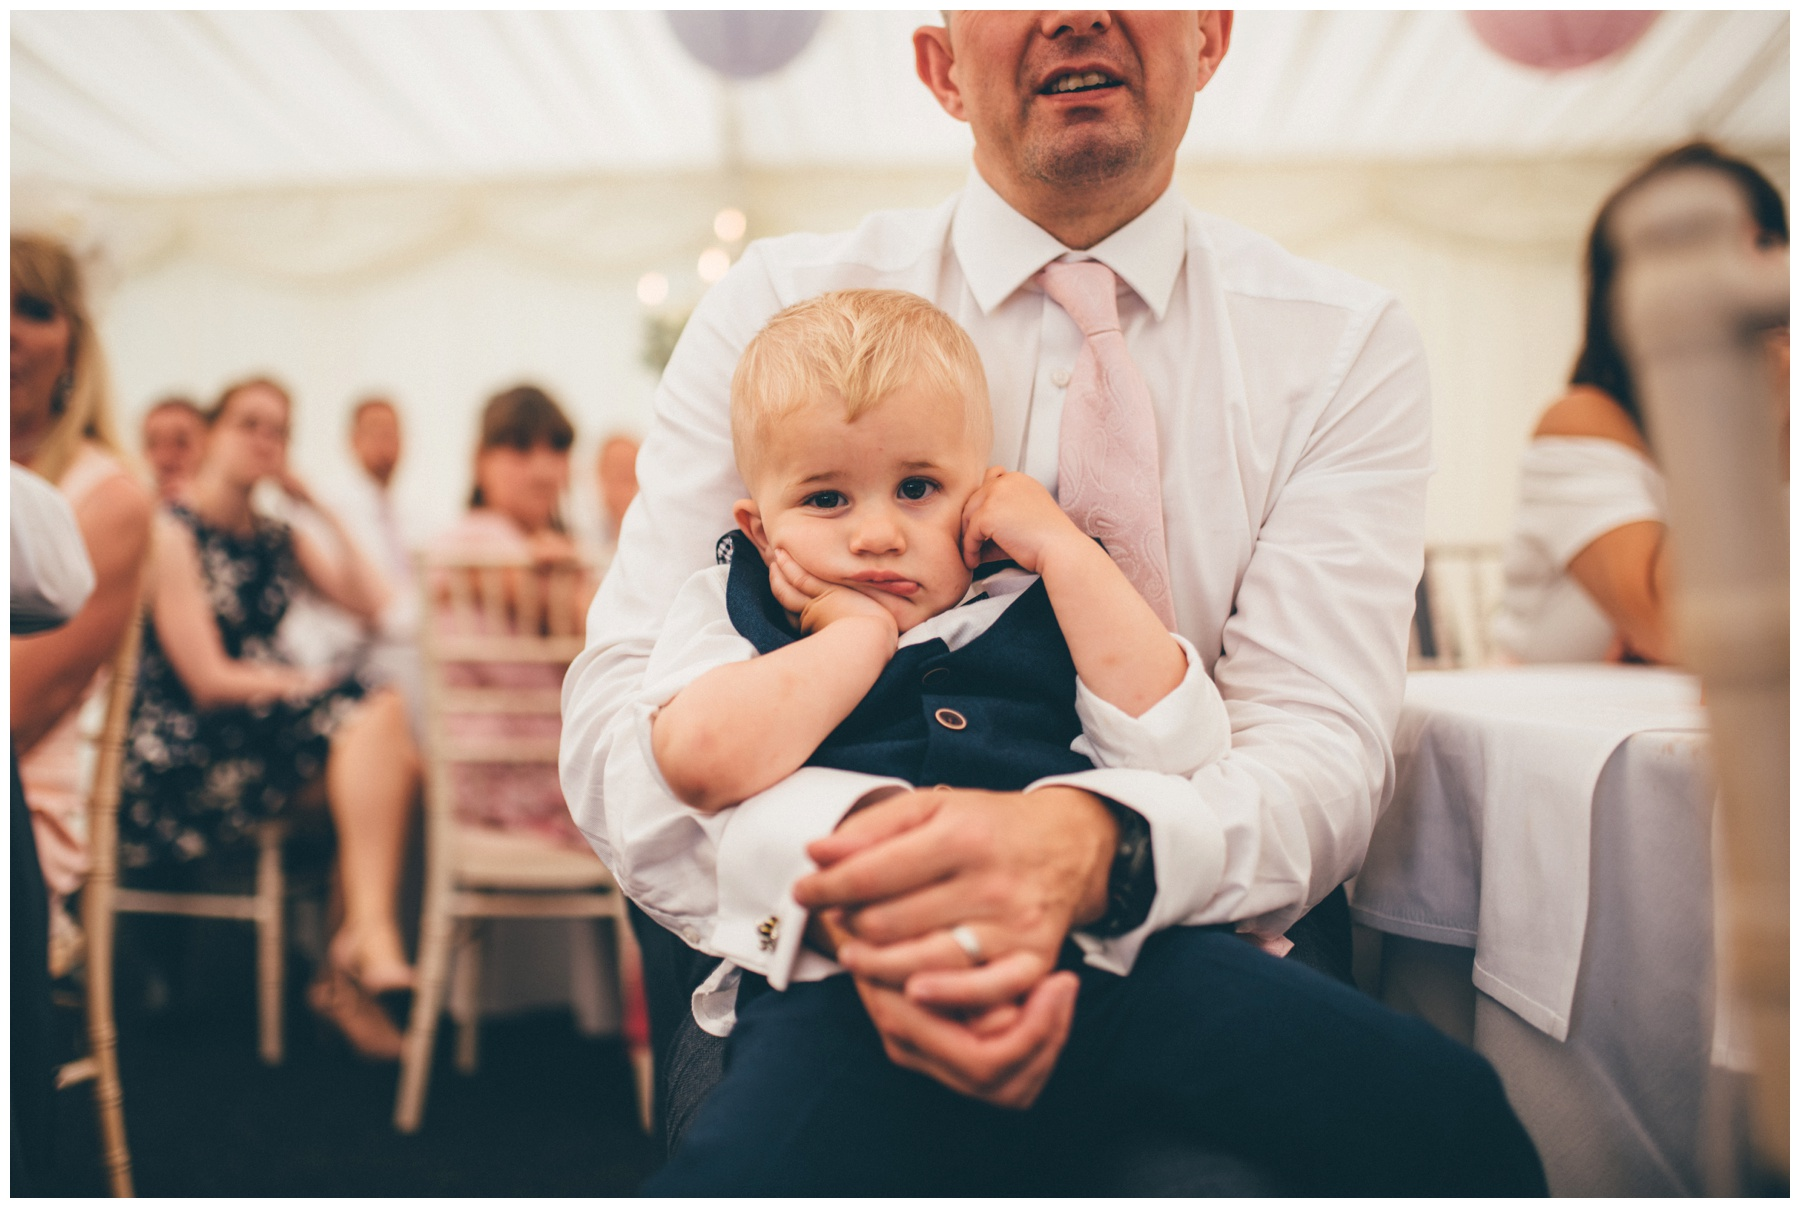 Adorable little wedding venue looks incredibly bored during the wedding speeches at Nunsmere Hall.